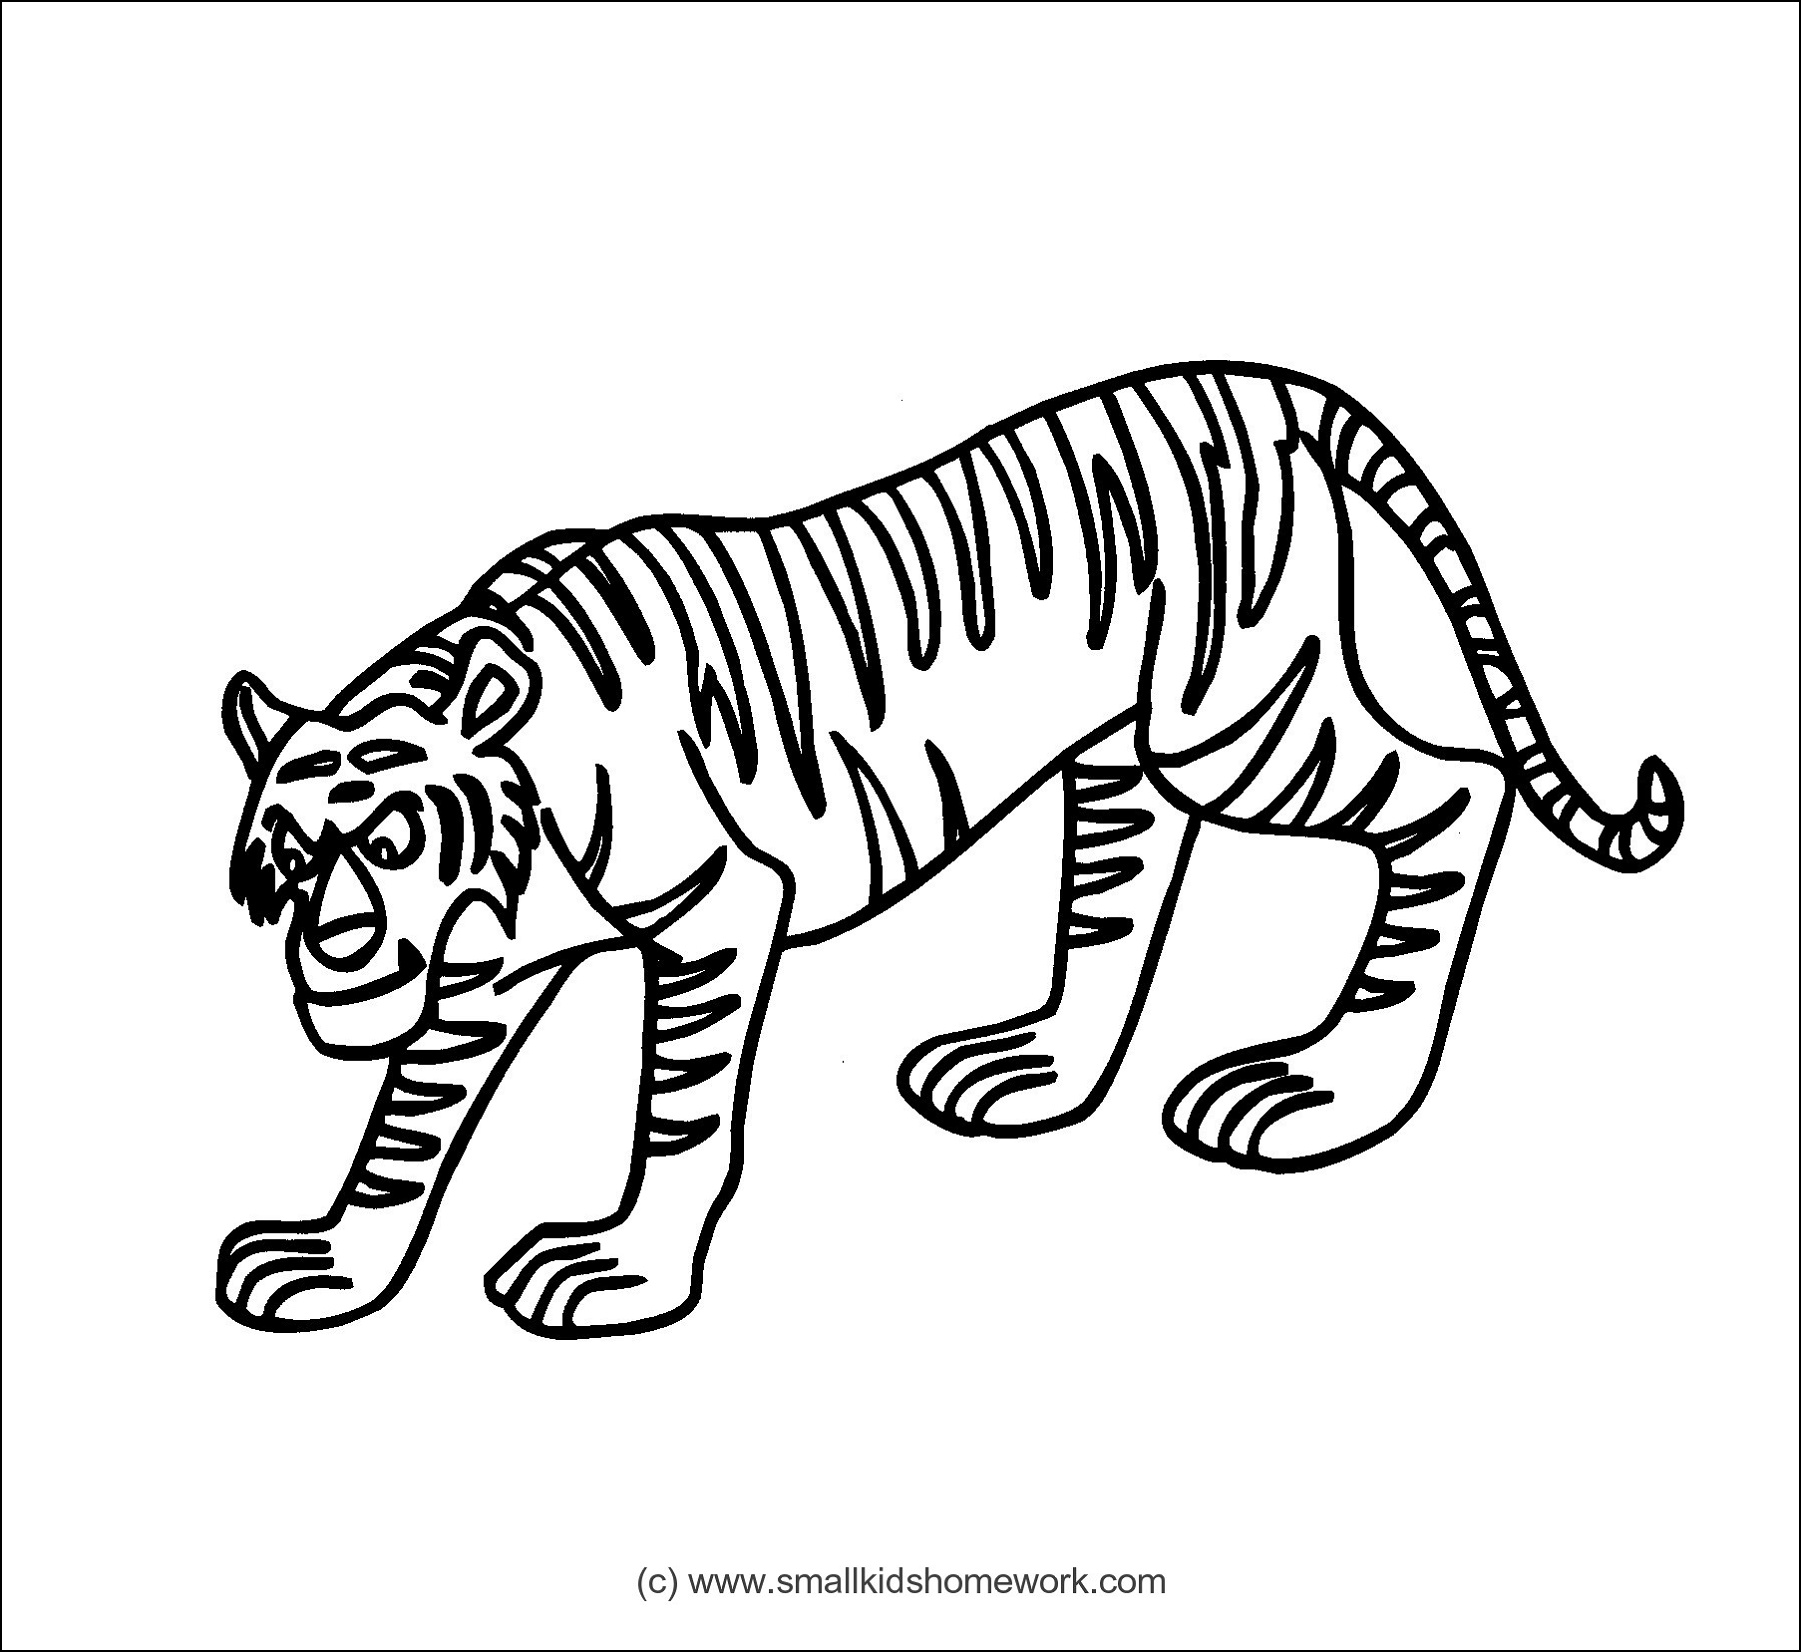 Tiger Outline And Coloring Picture With Interesting Facts